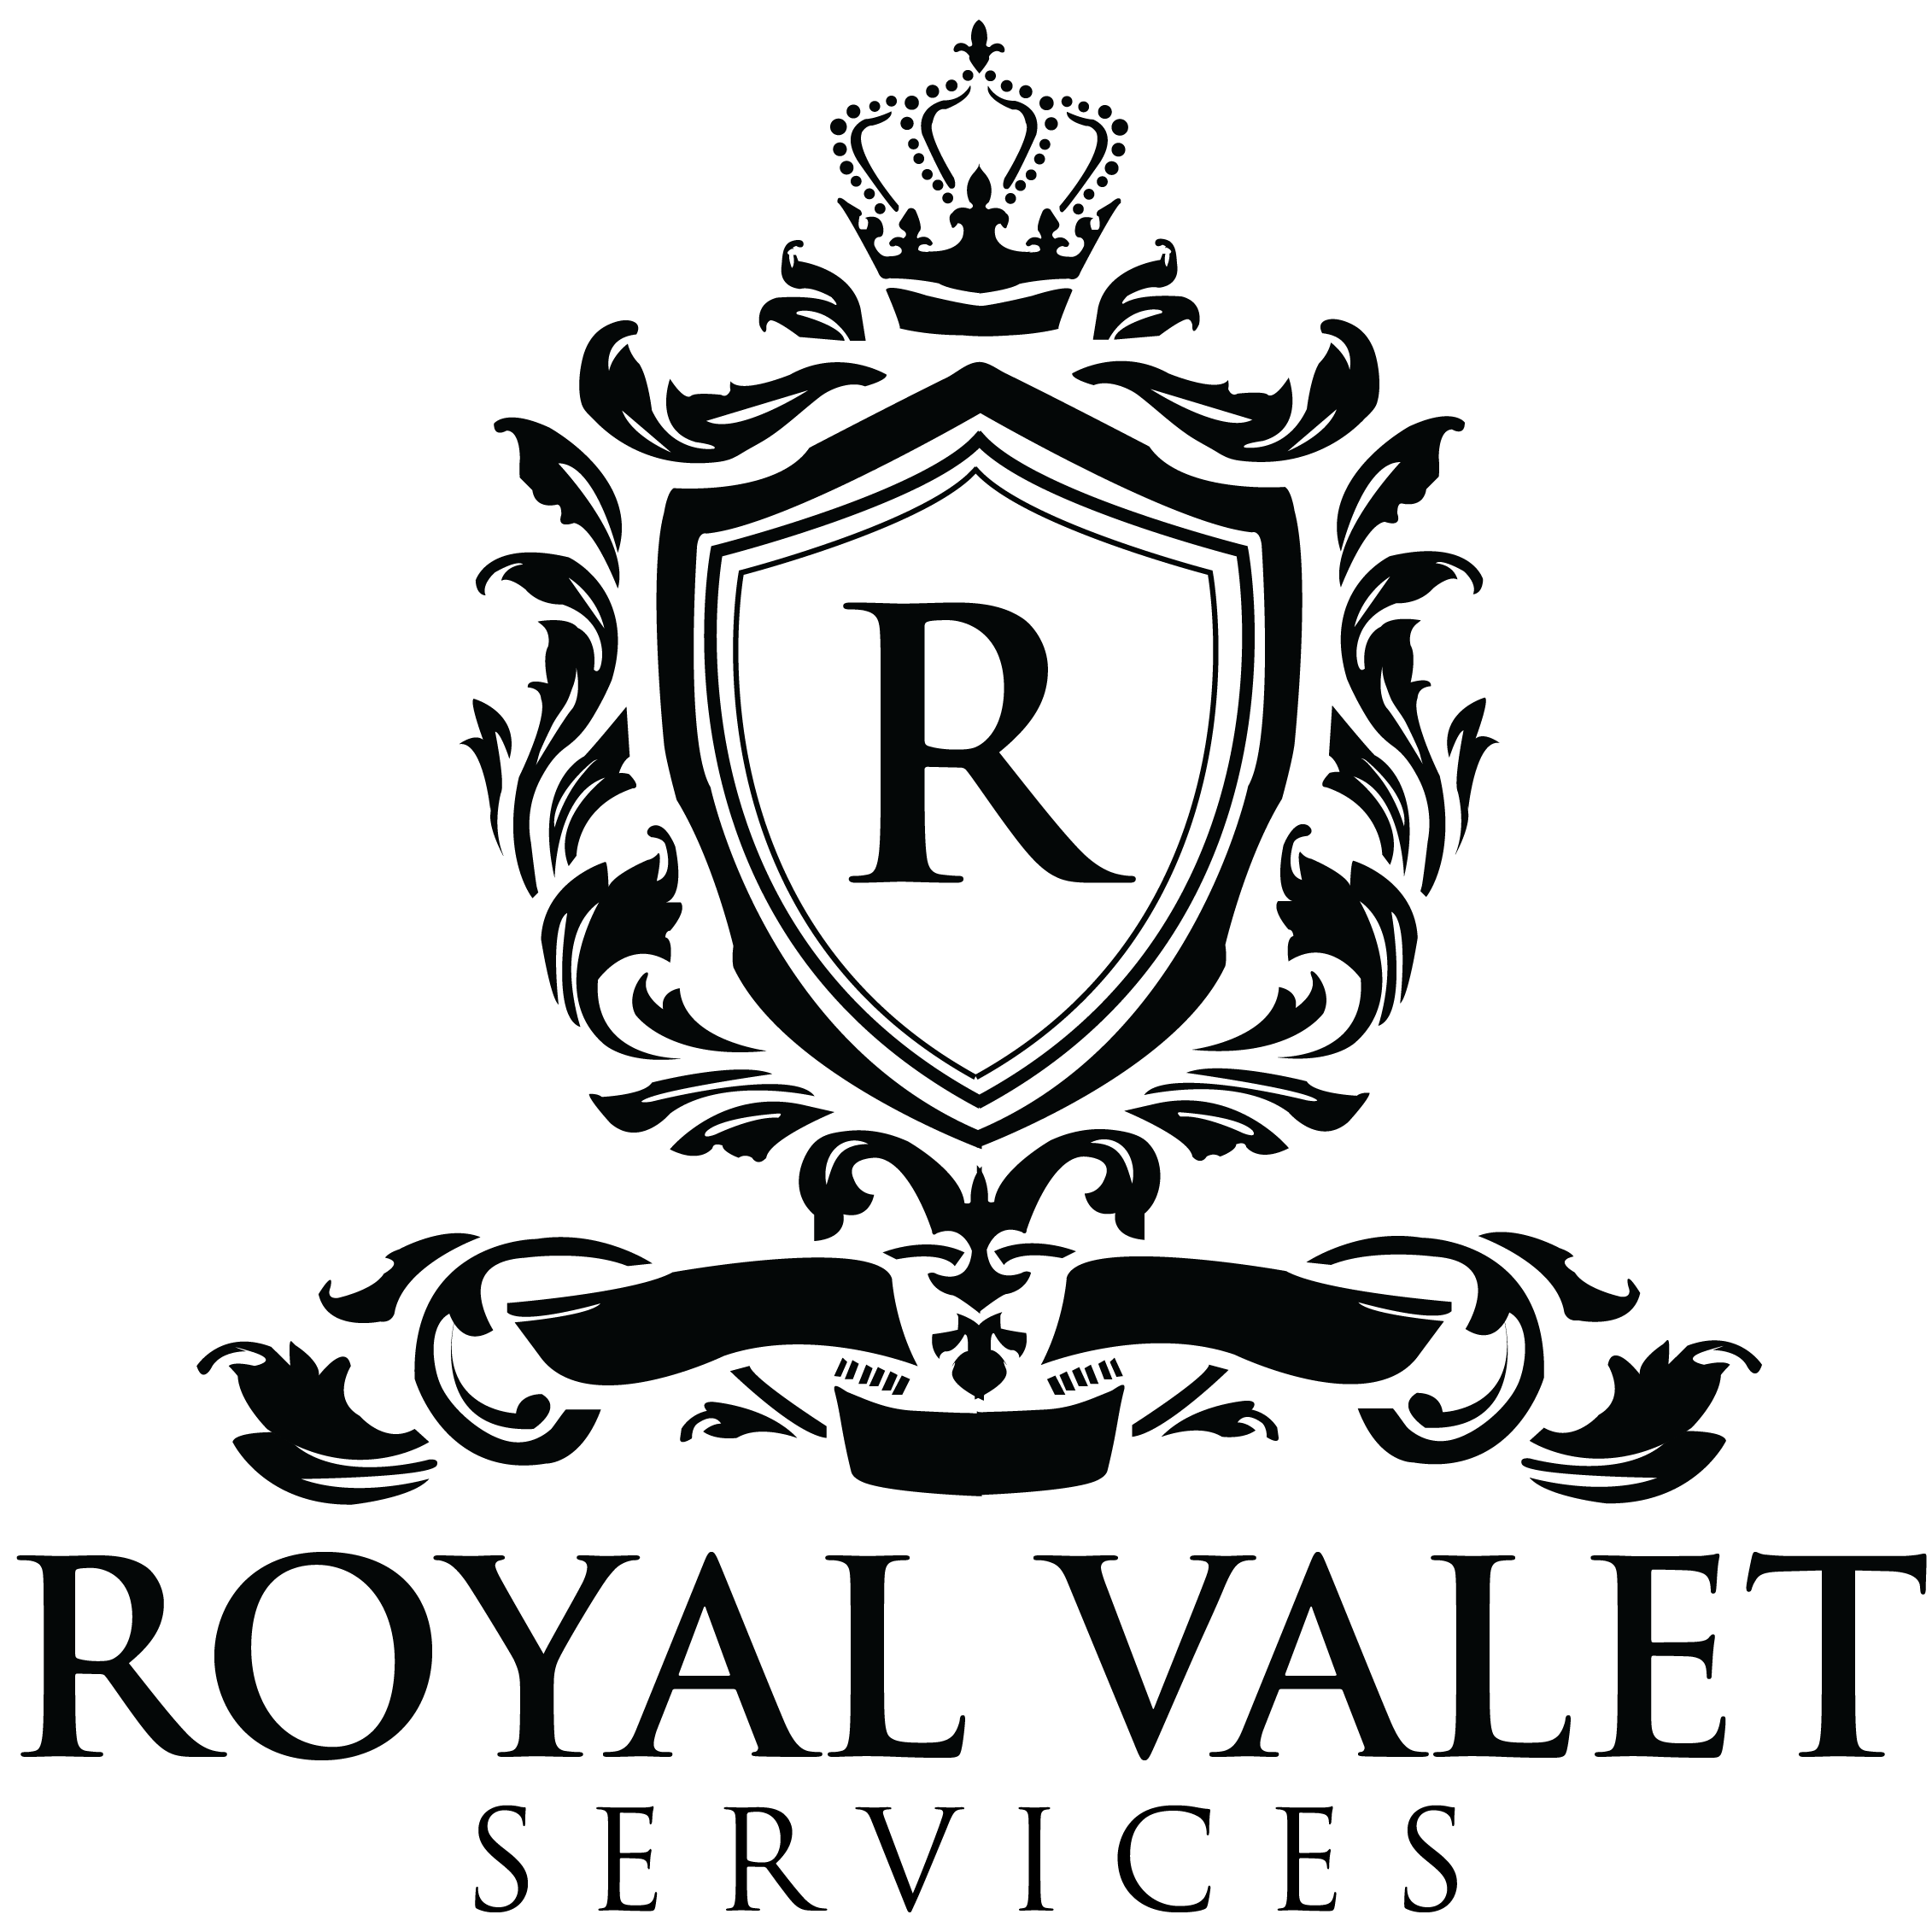 Royal Valet Services